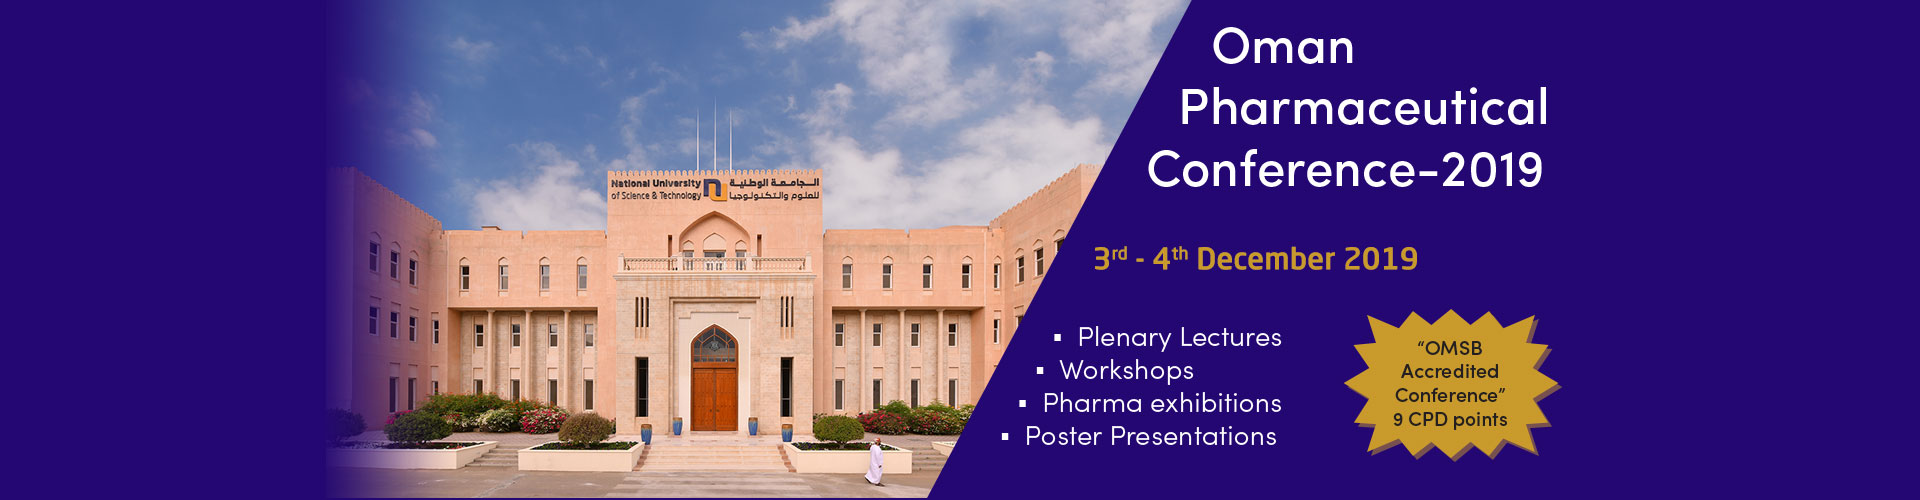 Oman Pharmaceutical Conference